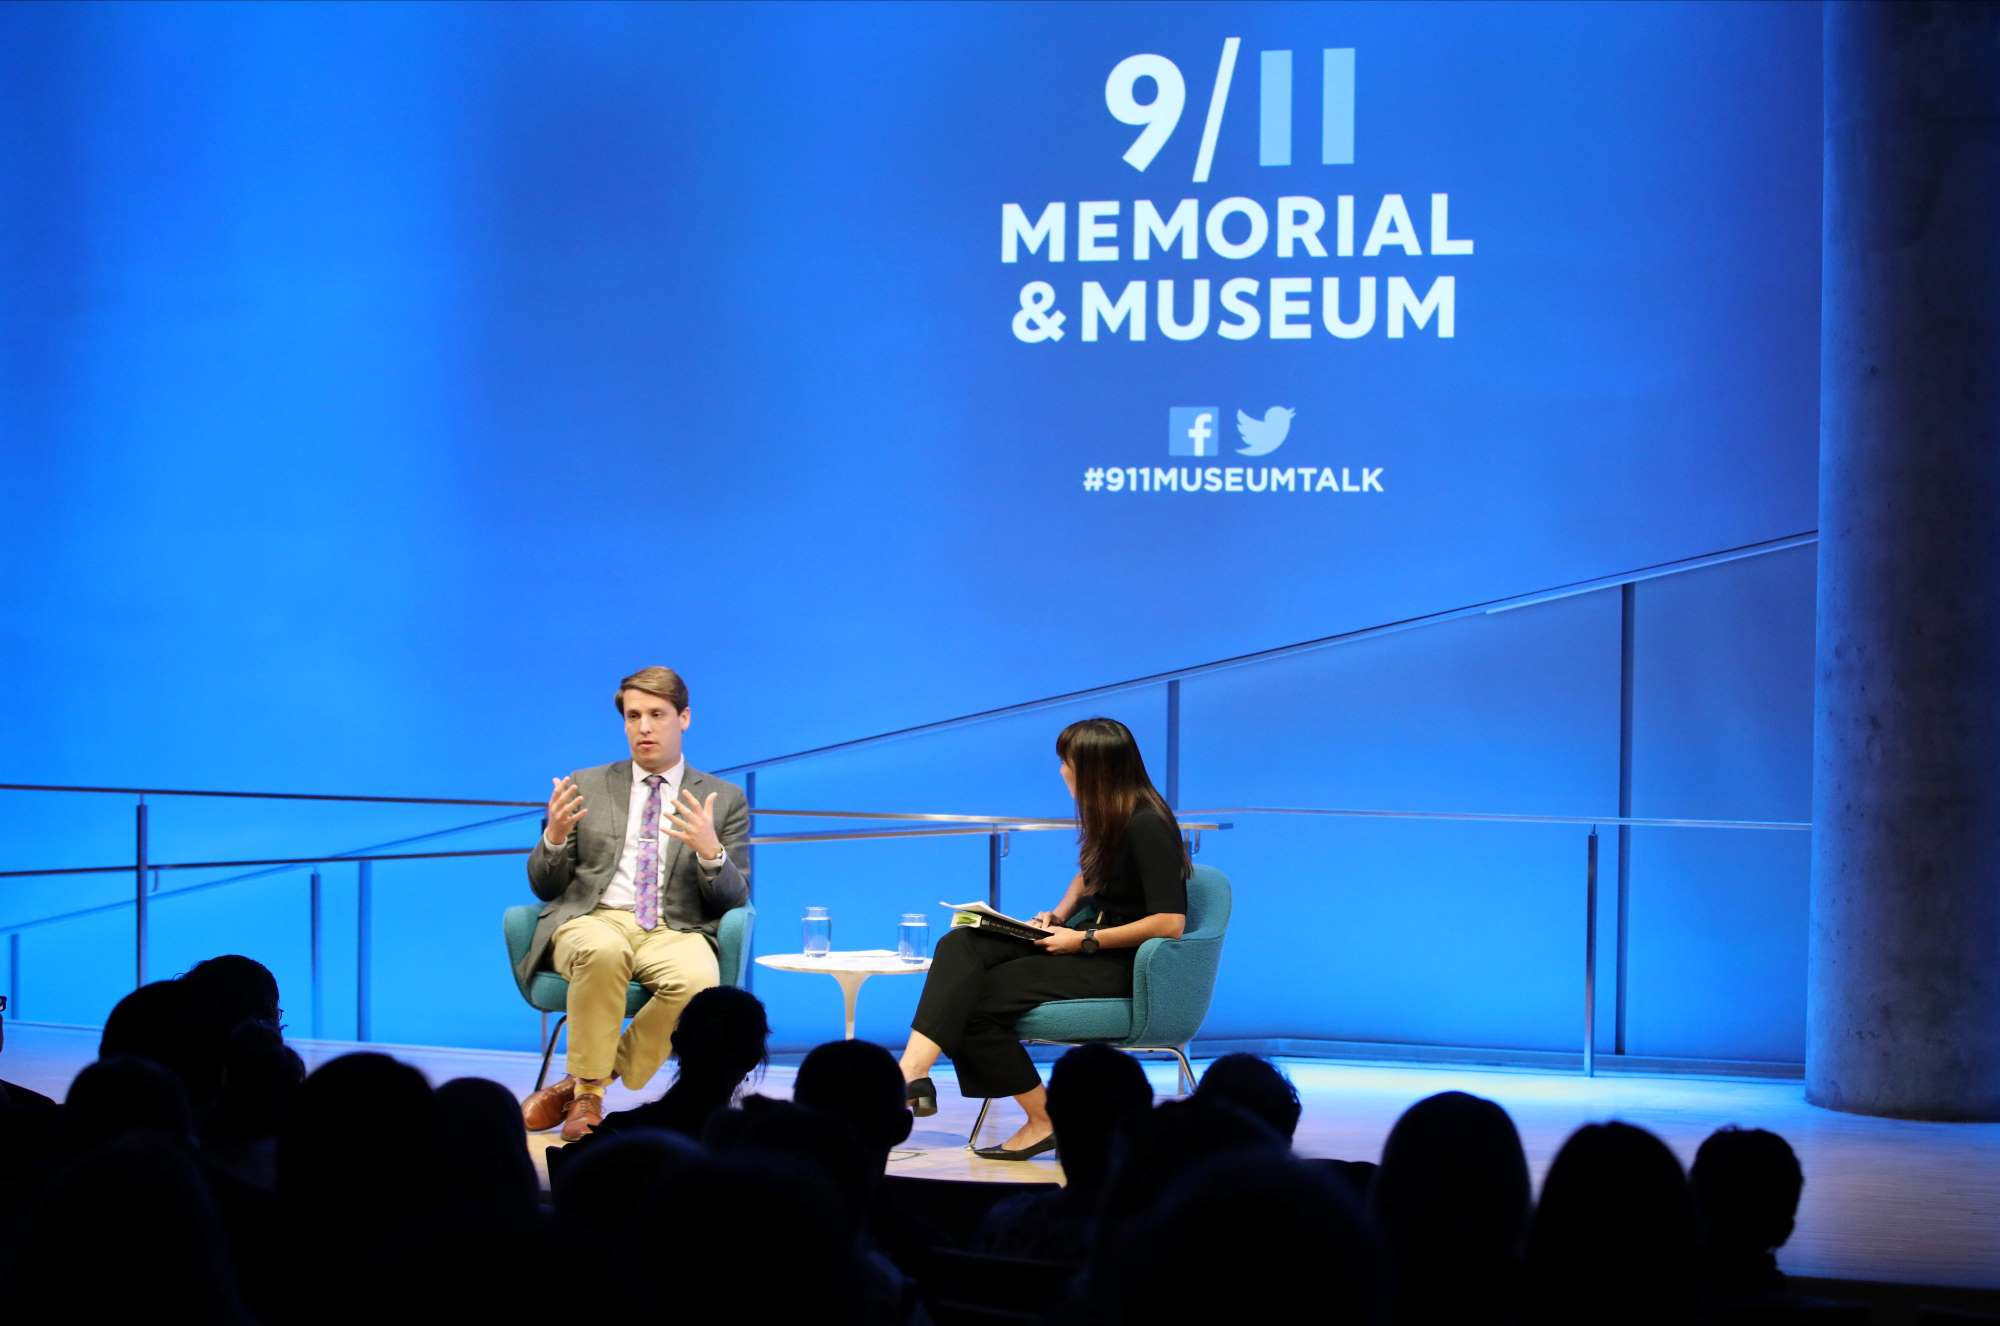 "This wide-angle photo of the Museum Auditorium shows journalist and historian Garrett Graff seated onstage with the woman who is hosting the public program ""Only Plane in the Sky. Graff is gesturing with both hands as he looks towards the audience, whose heads are silhouetted in the foreground. A wall behind Graff is lit blue and features the logo of the 9/11 Memorial & Museum."